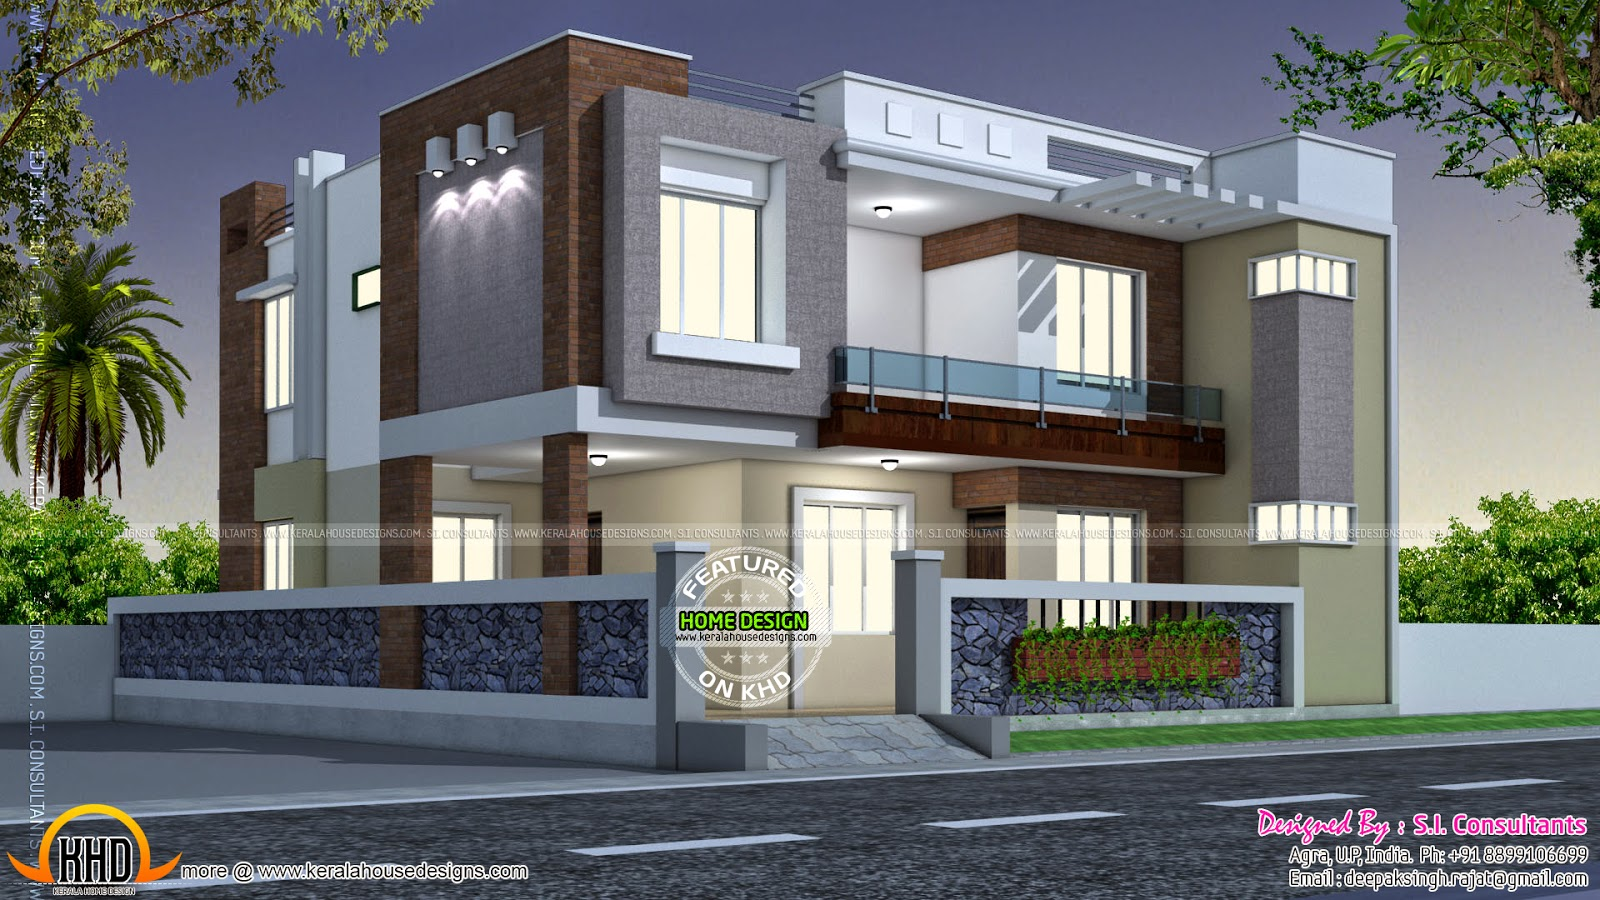 Modern style indian home kerala home design and floor plans Homes design images india